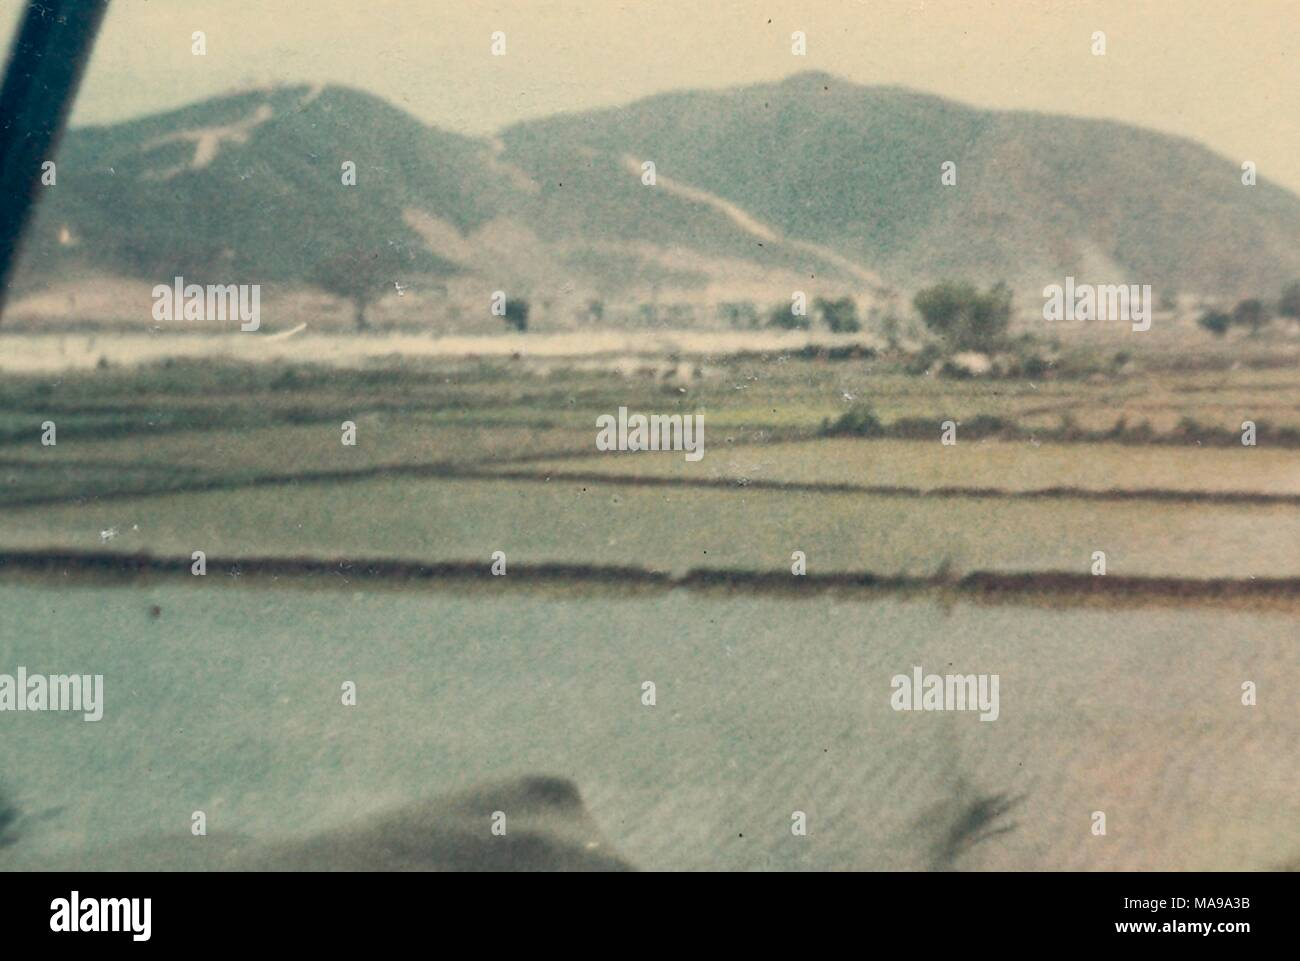 Color photograph, shot from inside a vehicle, showing a flat expanse of rice paddies, with mountains in the distance, photographed in Vietnam during the Vietnam War, 1968. () - Stock Image